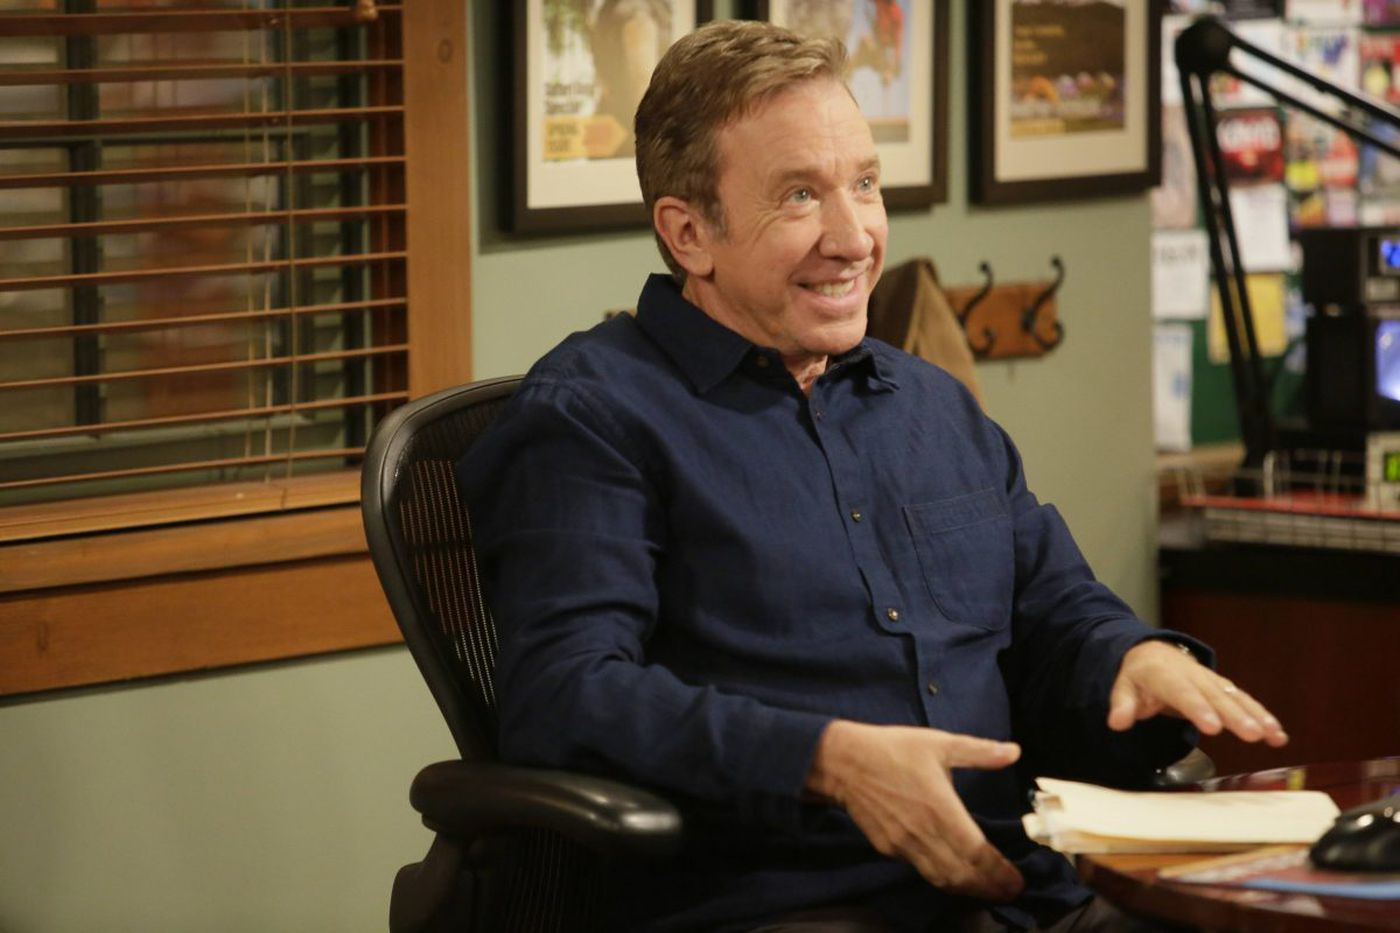 'Rise' falls, but 'Last Man Standing,' 'Brooklyn Nine-Nine' are winners as Fox, NBC unveil 2018-19 plans